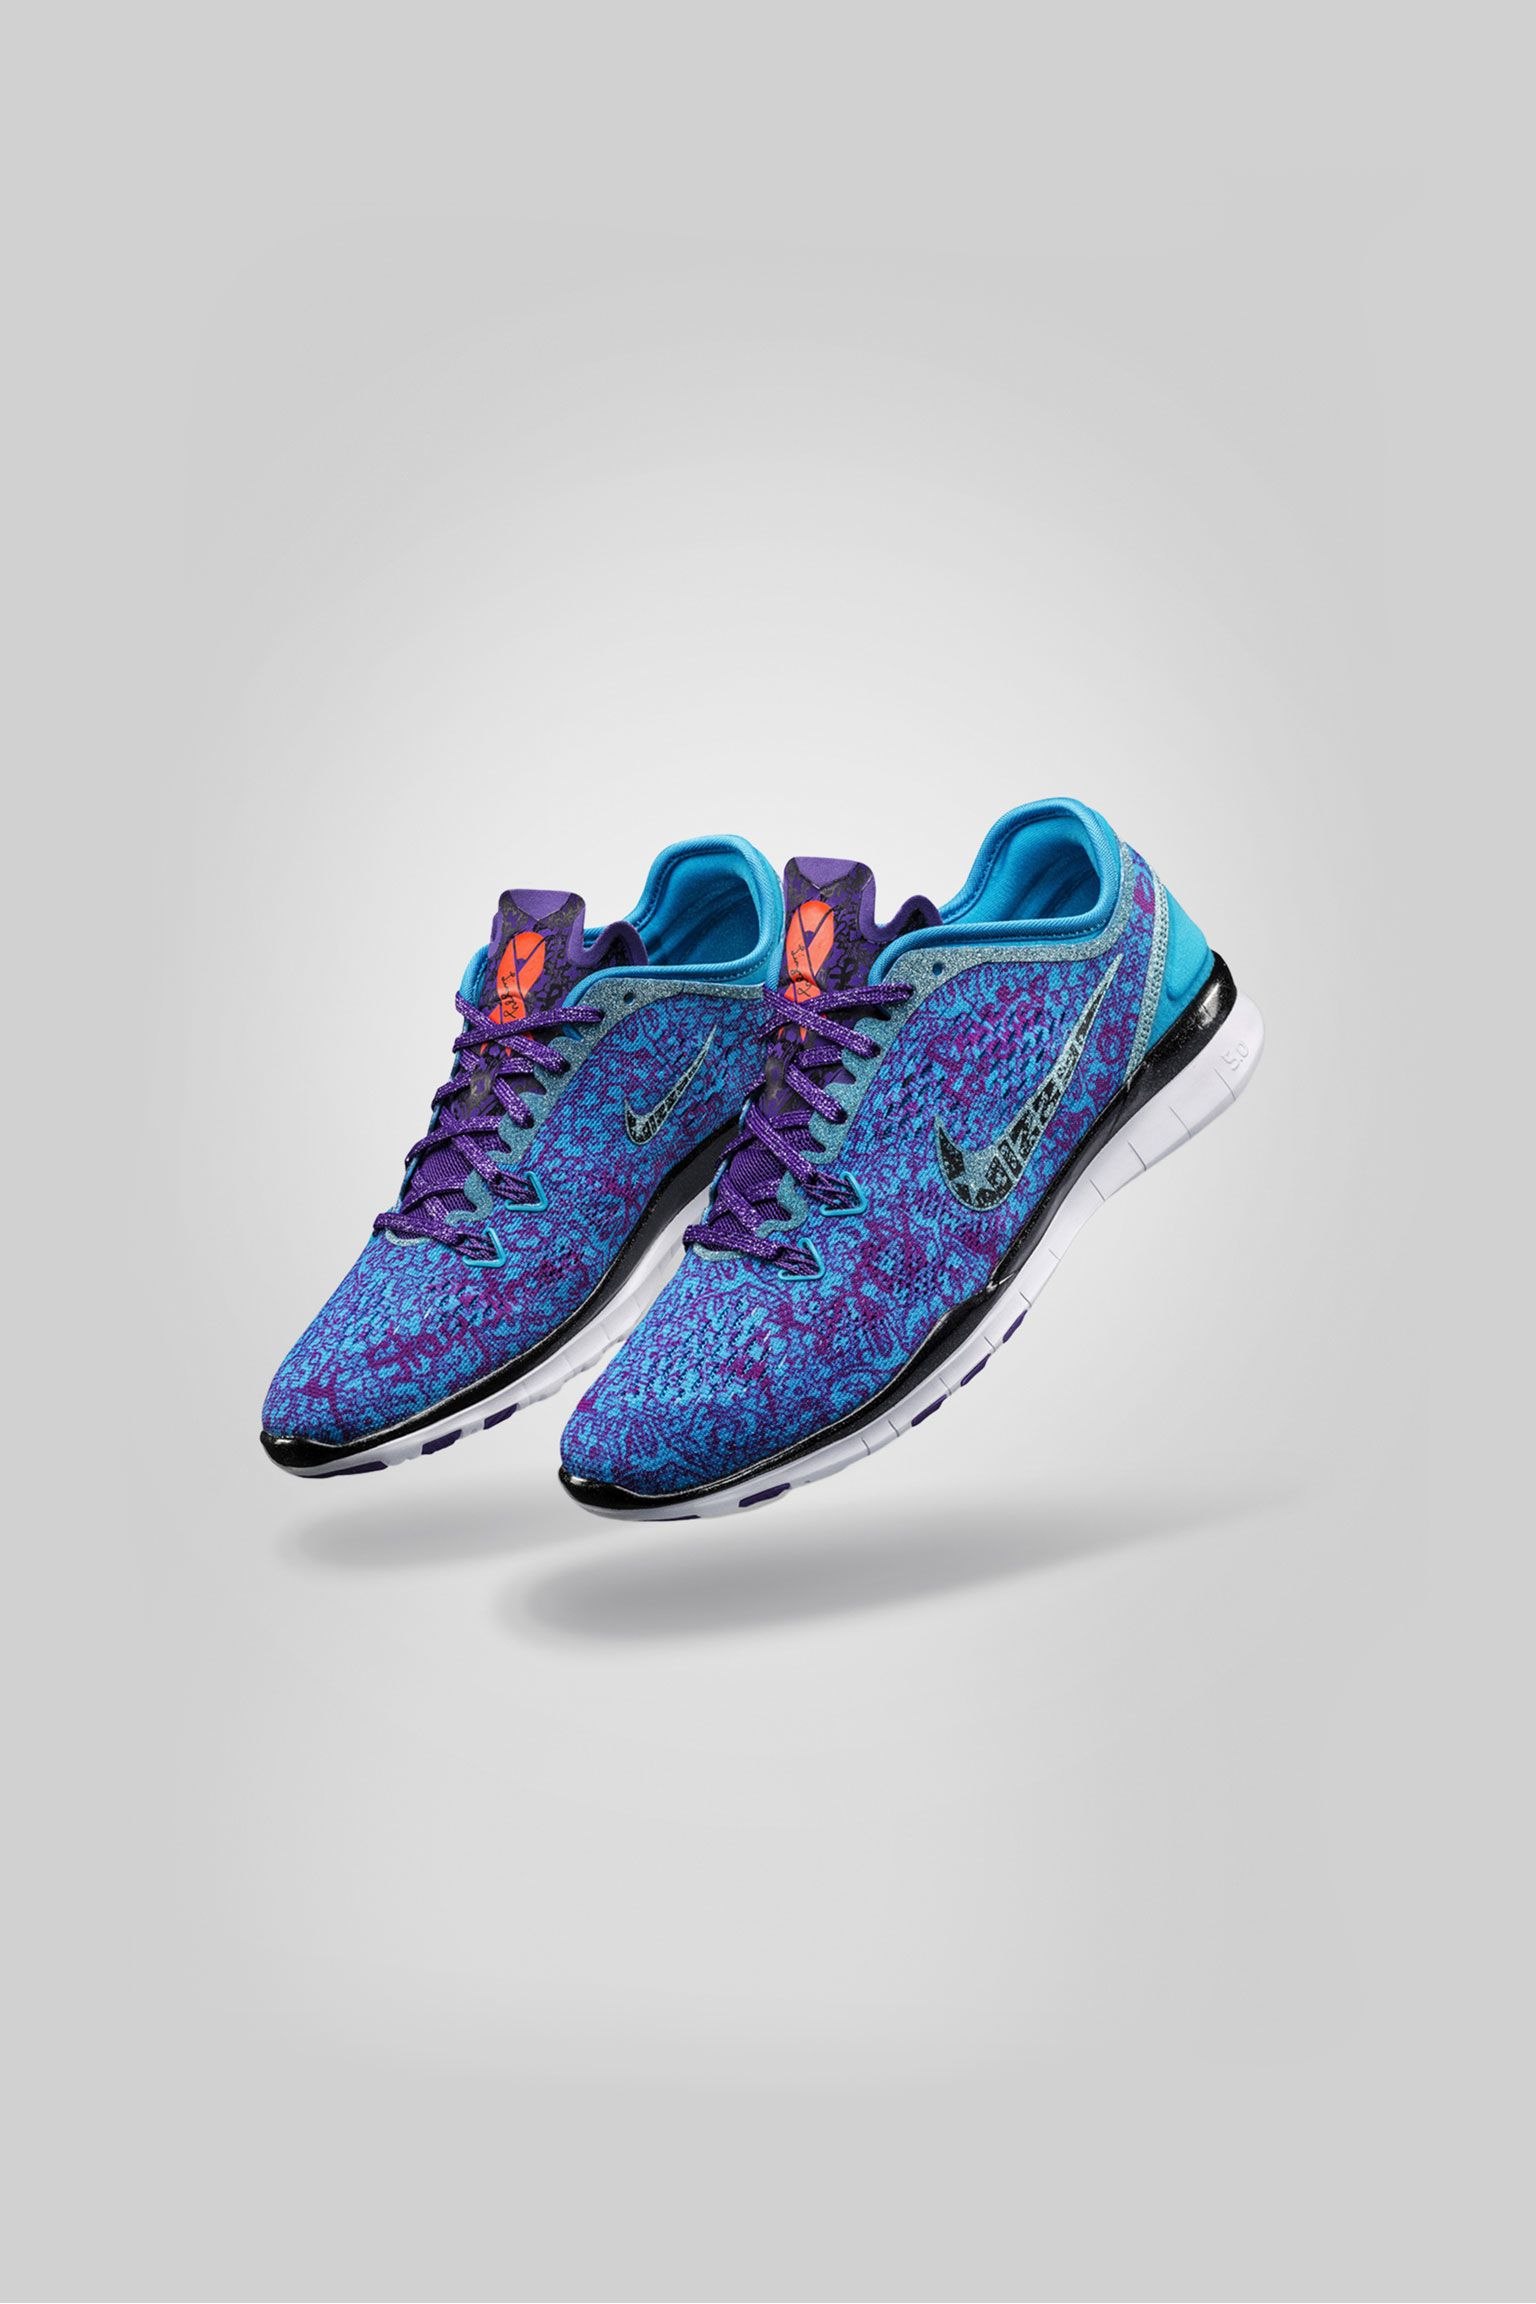 ed114dccef1d0 coupon code for nike free run 5 new doernbecher aa269 6c5d3